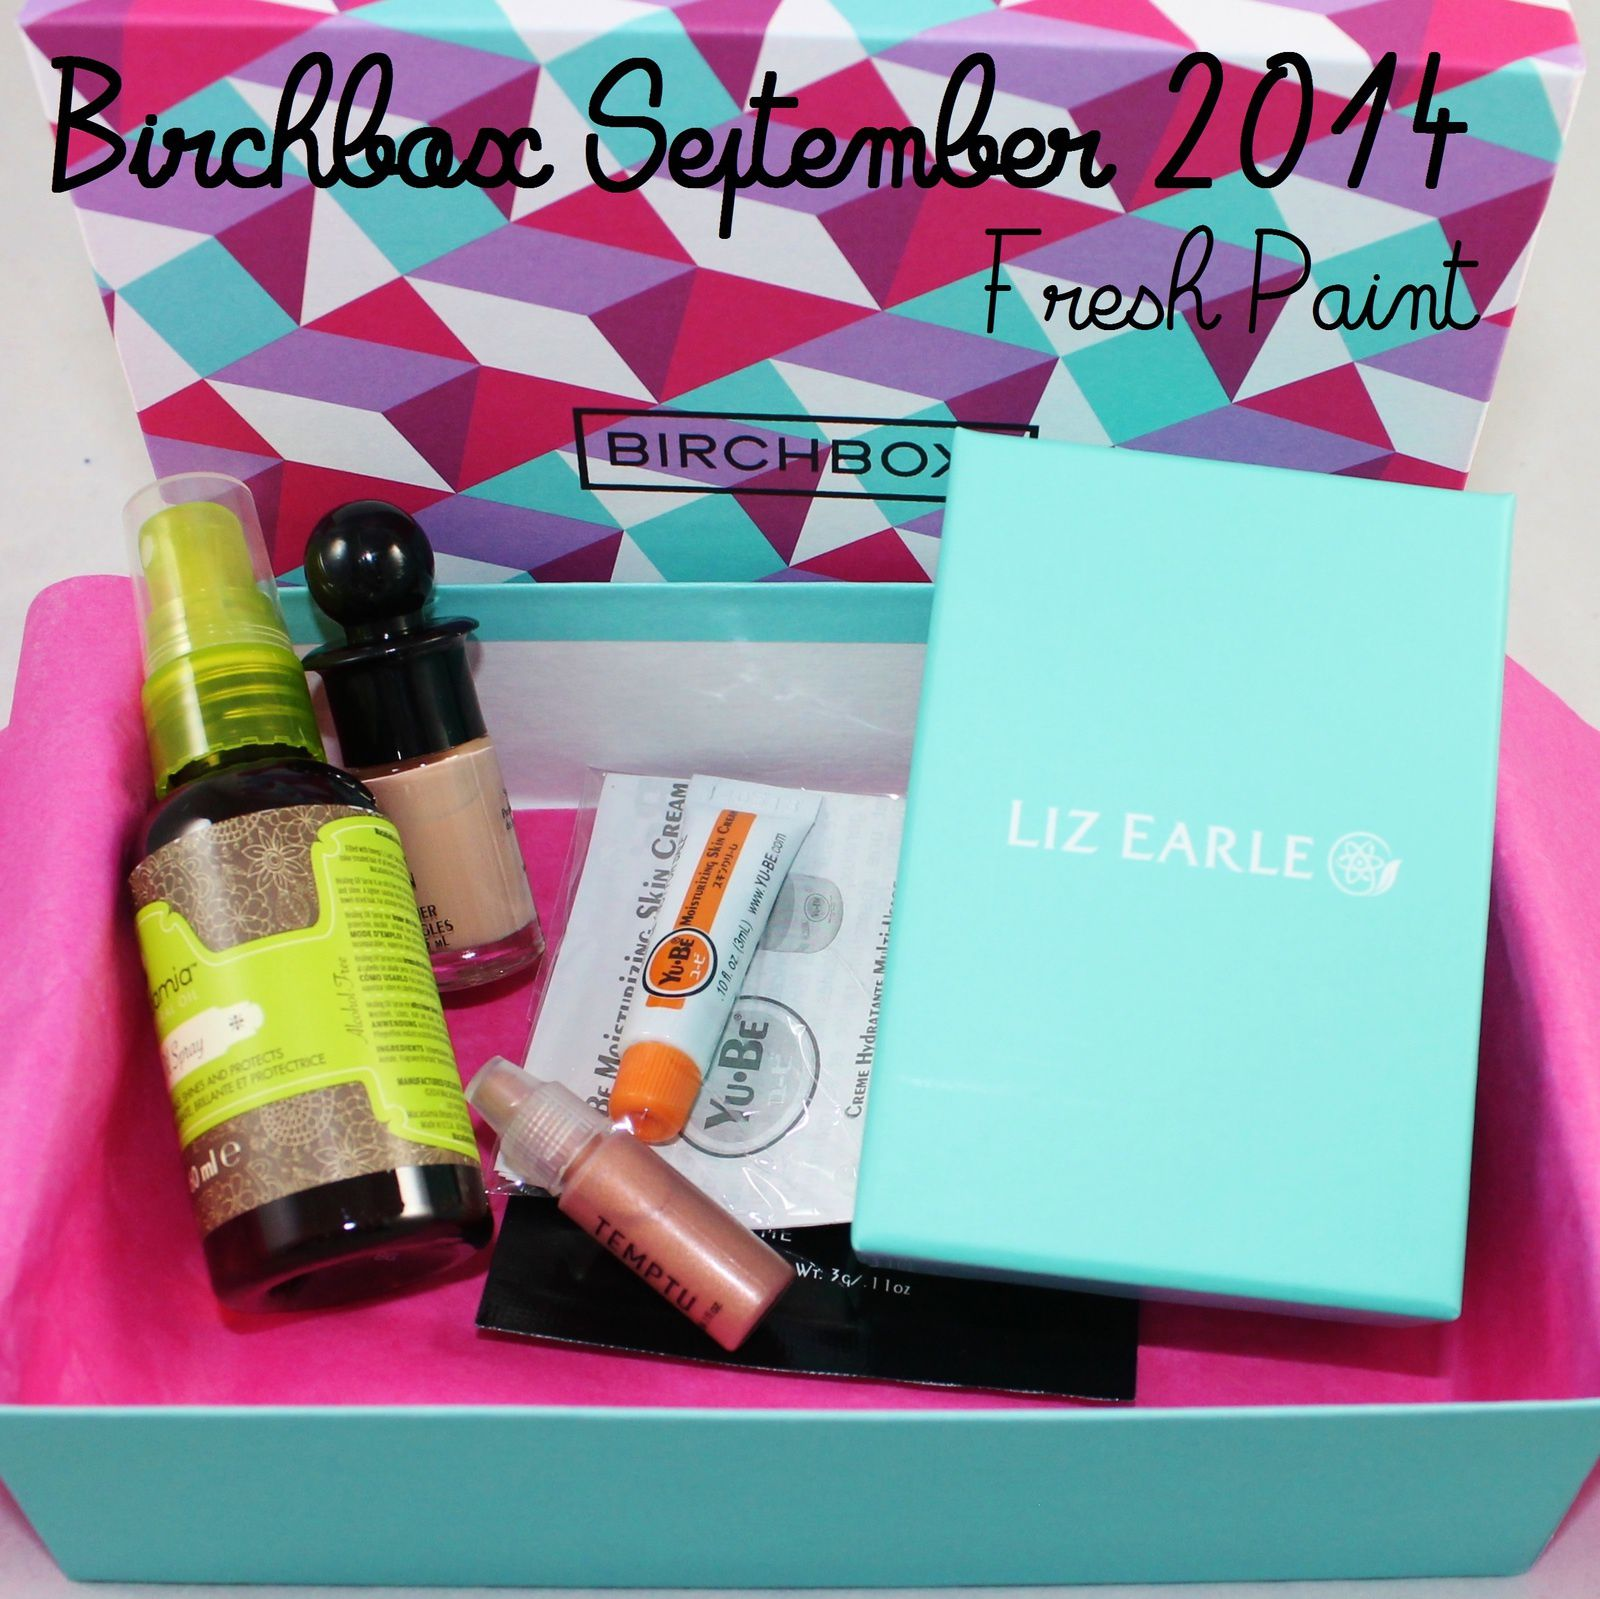 Birchbox September 2014 - Fresh Paint